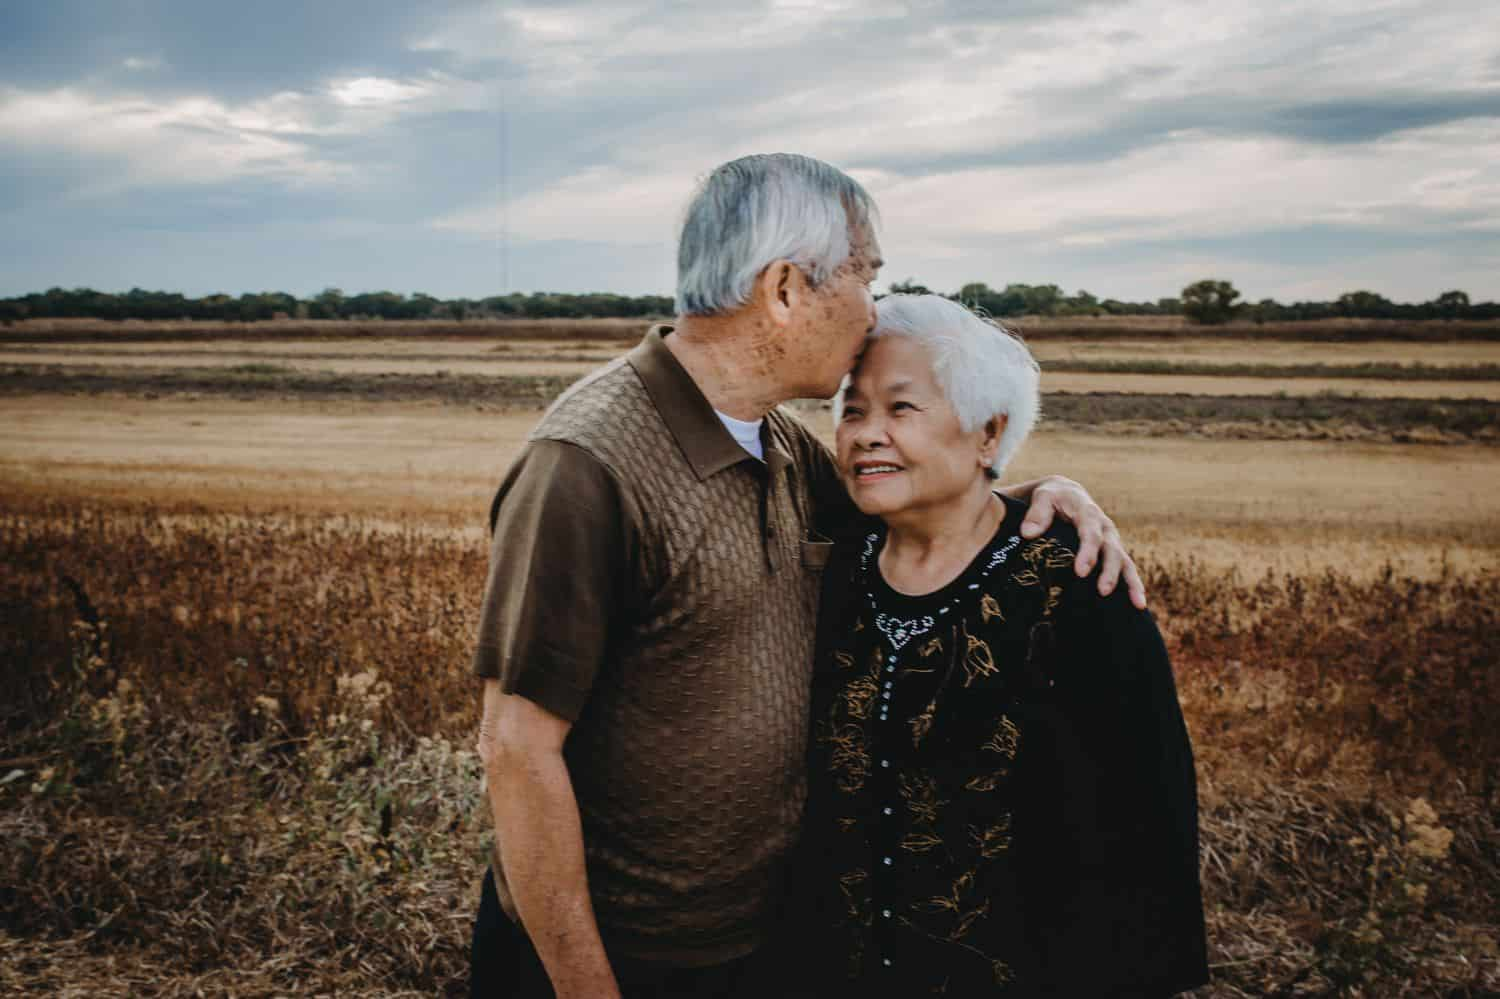 A grandfather kisses his wife on the forehead while standing in a field.